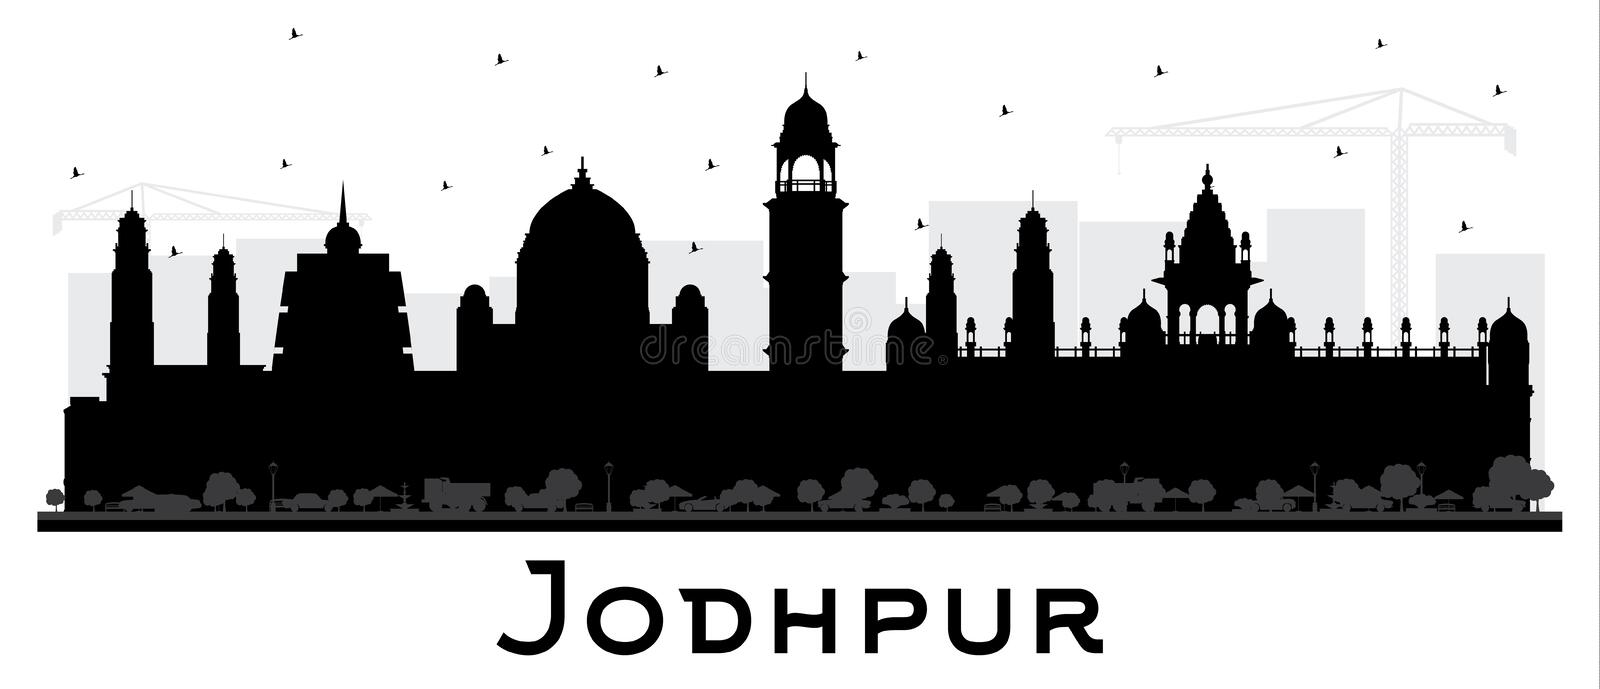 Jodhpur India City Skyline Silhouette with Black Buildings Isolated on White. Vector Illustration. Business Travel and Concept with Historic Architecture stock illustration